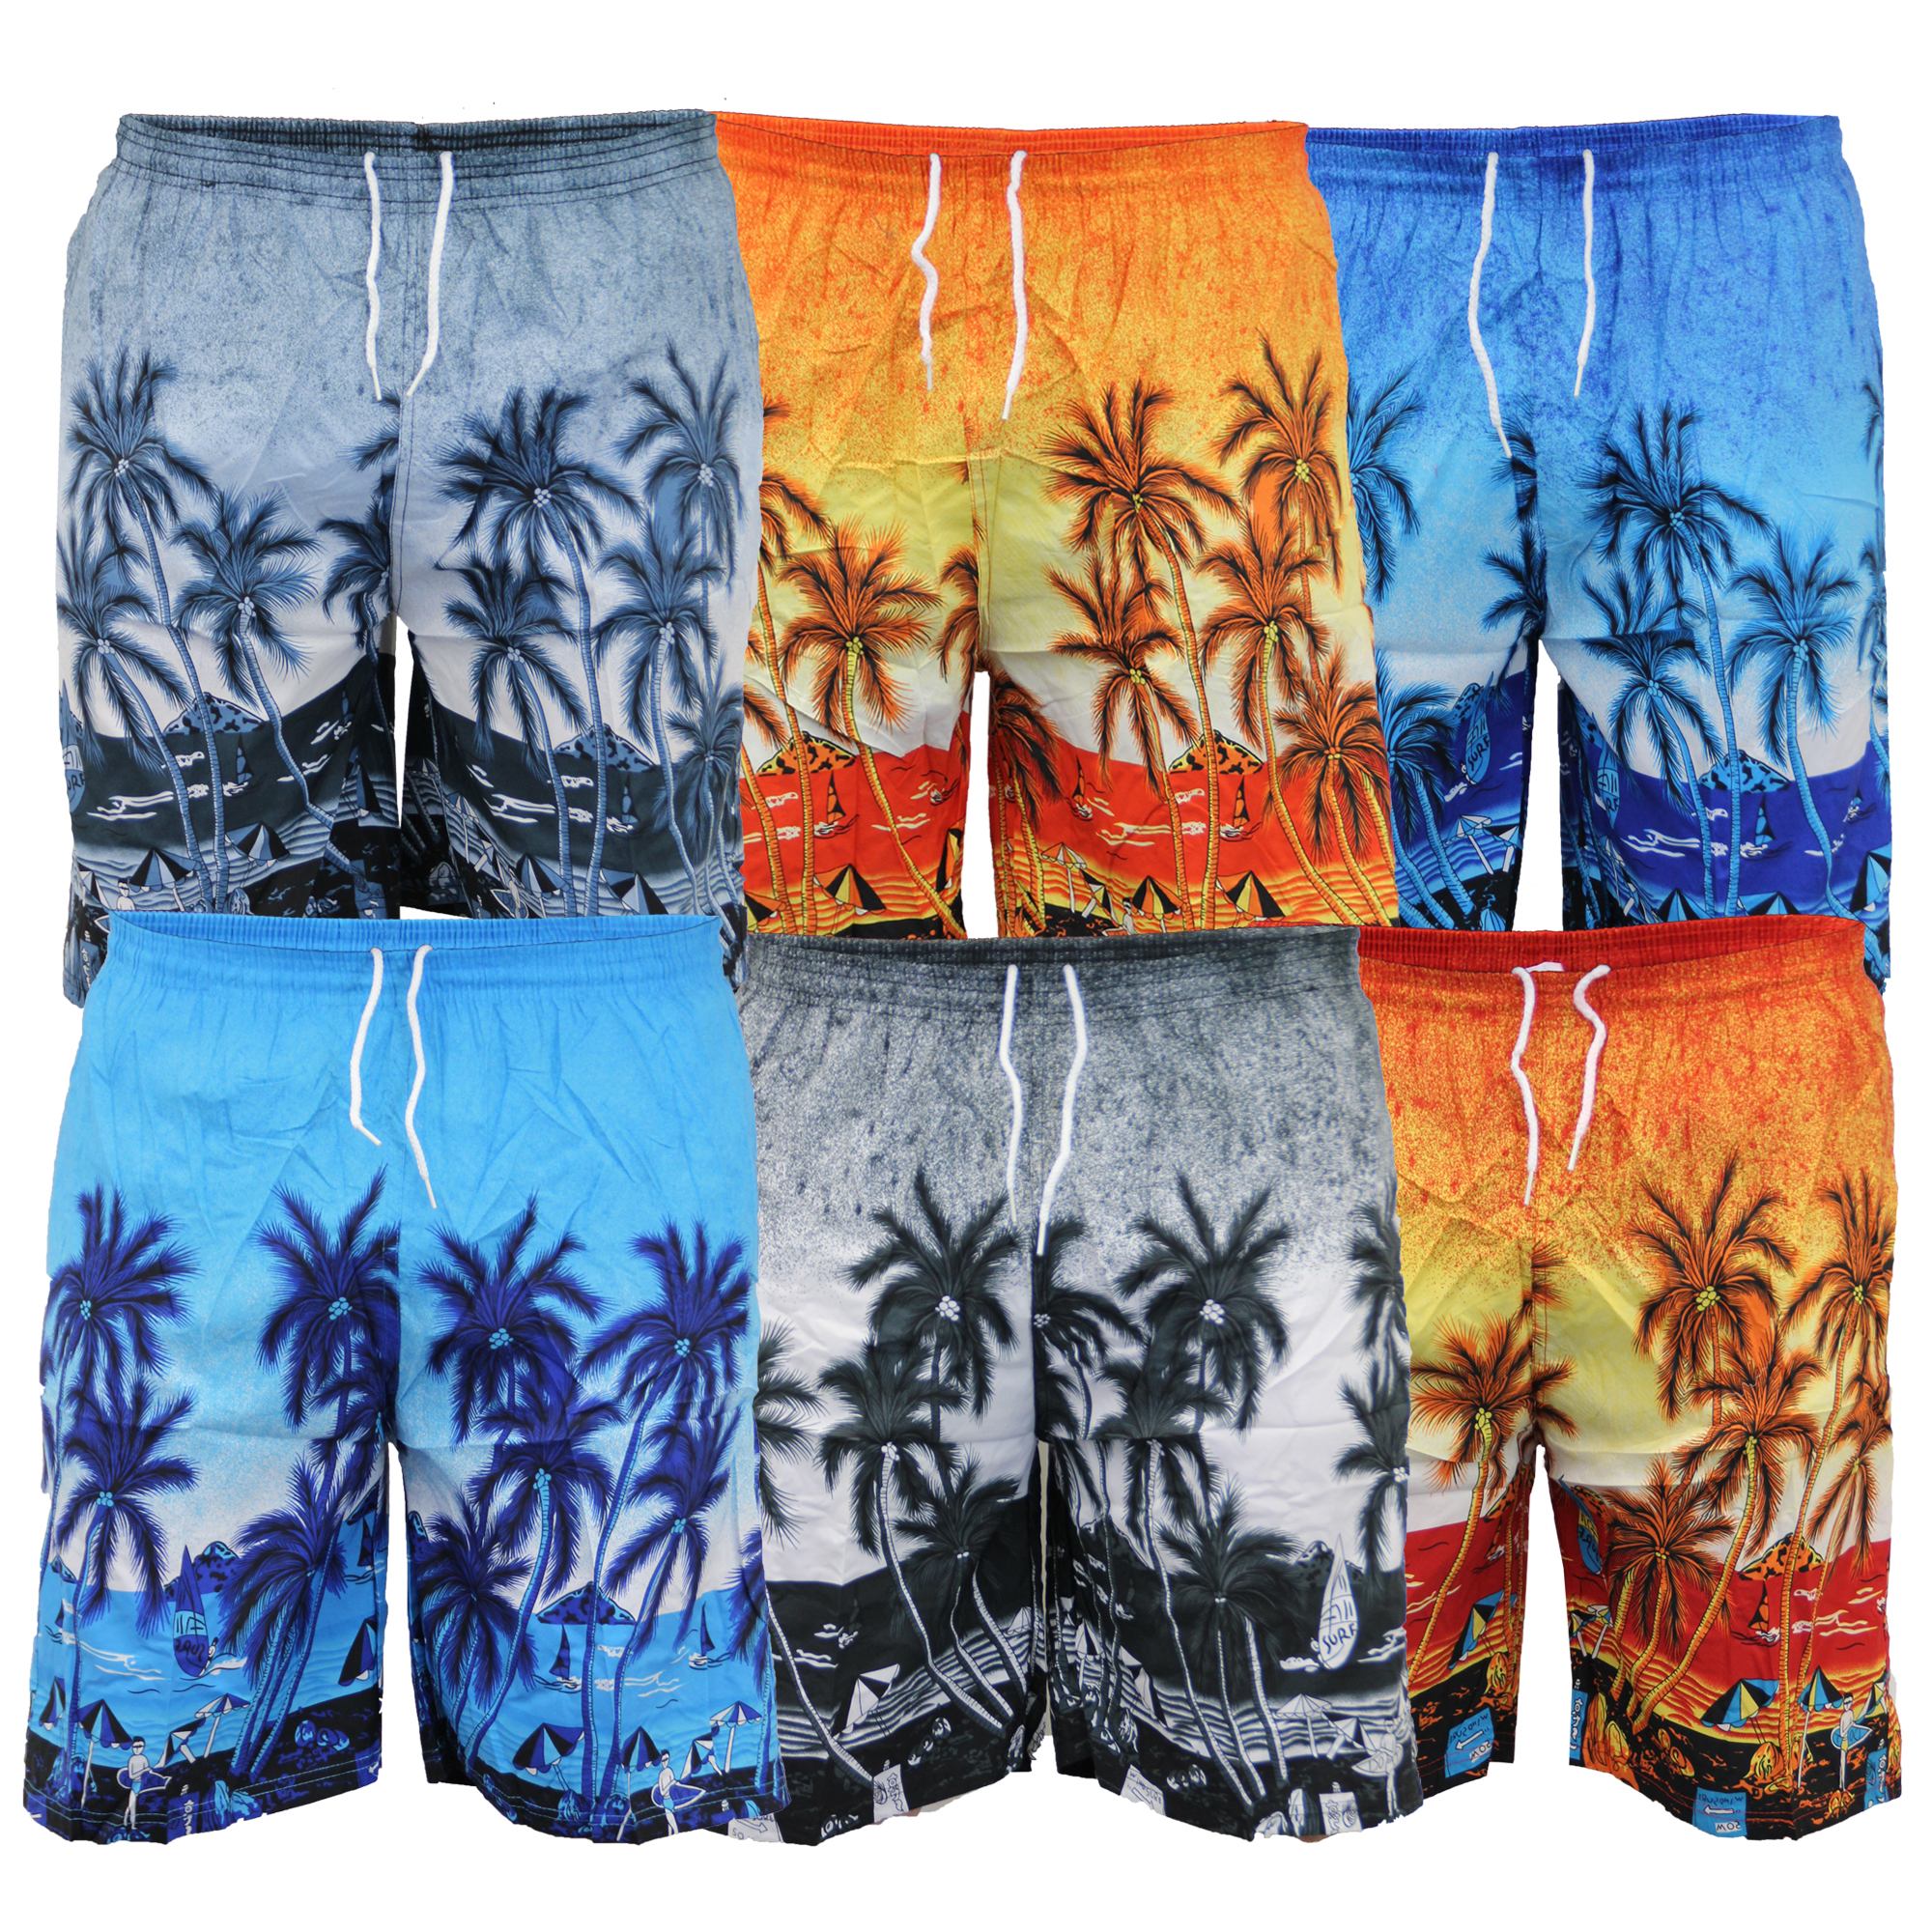 9022db85ef Details about Mens Hawaiian Swimming Shorts Beach Trunks Palm Print Surf  Board Mesh Lined New